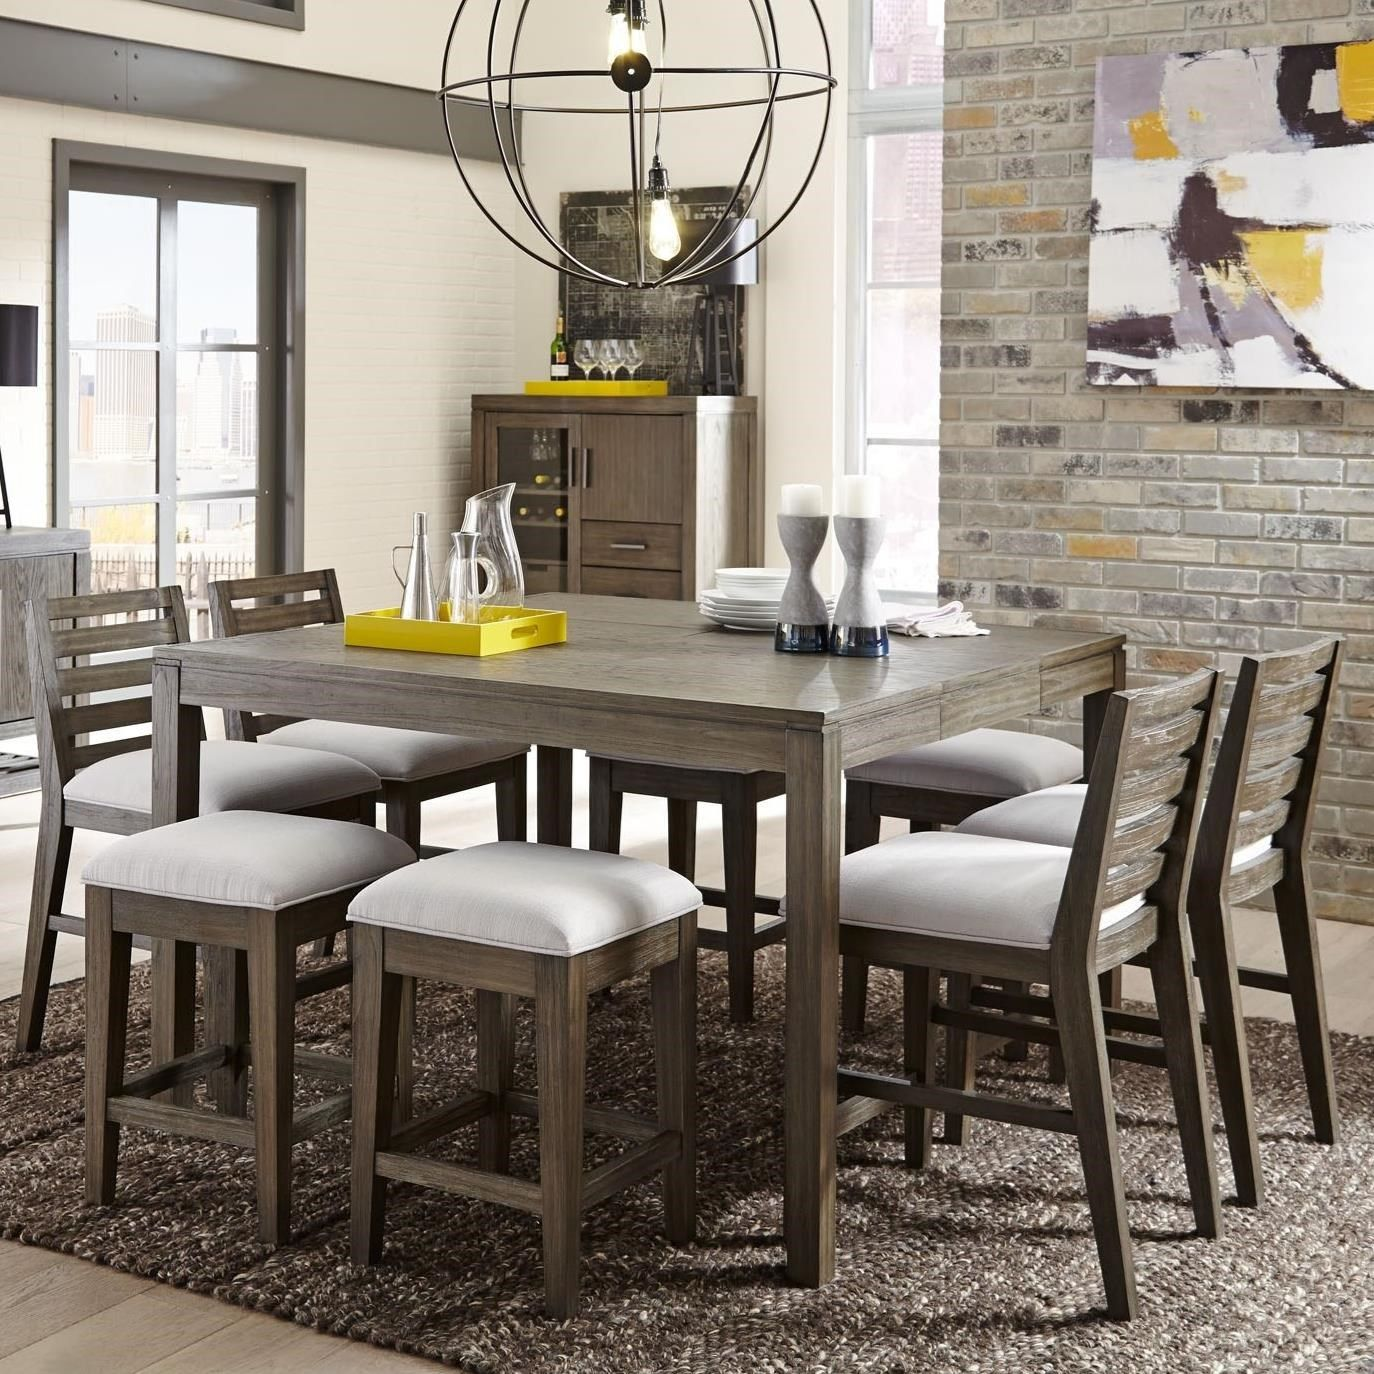 bravo 9 piece counter height dining set by casana home decor bravo 9 piece counter height dining set by casana